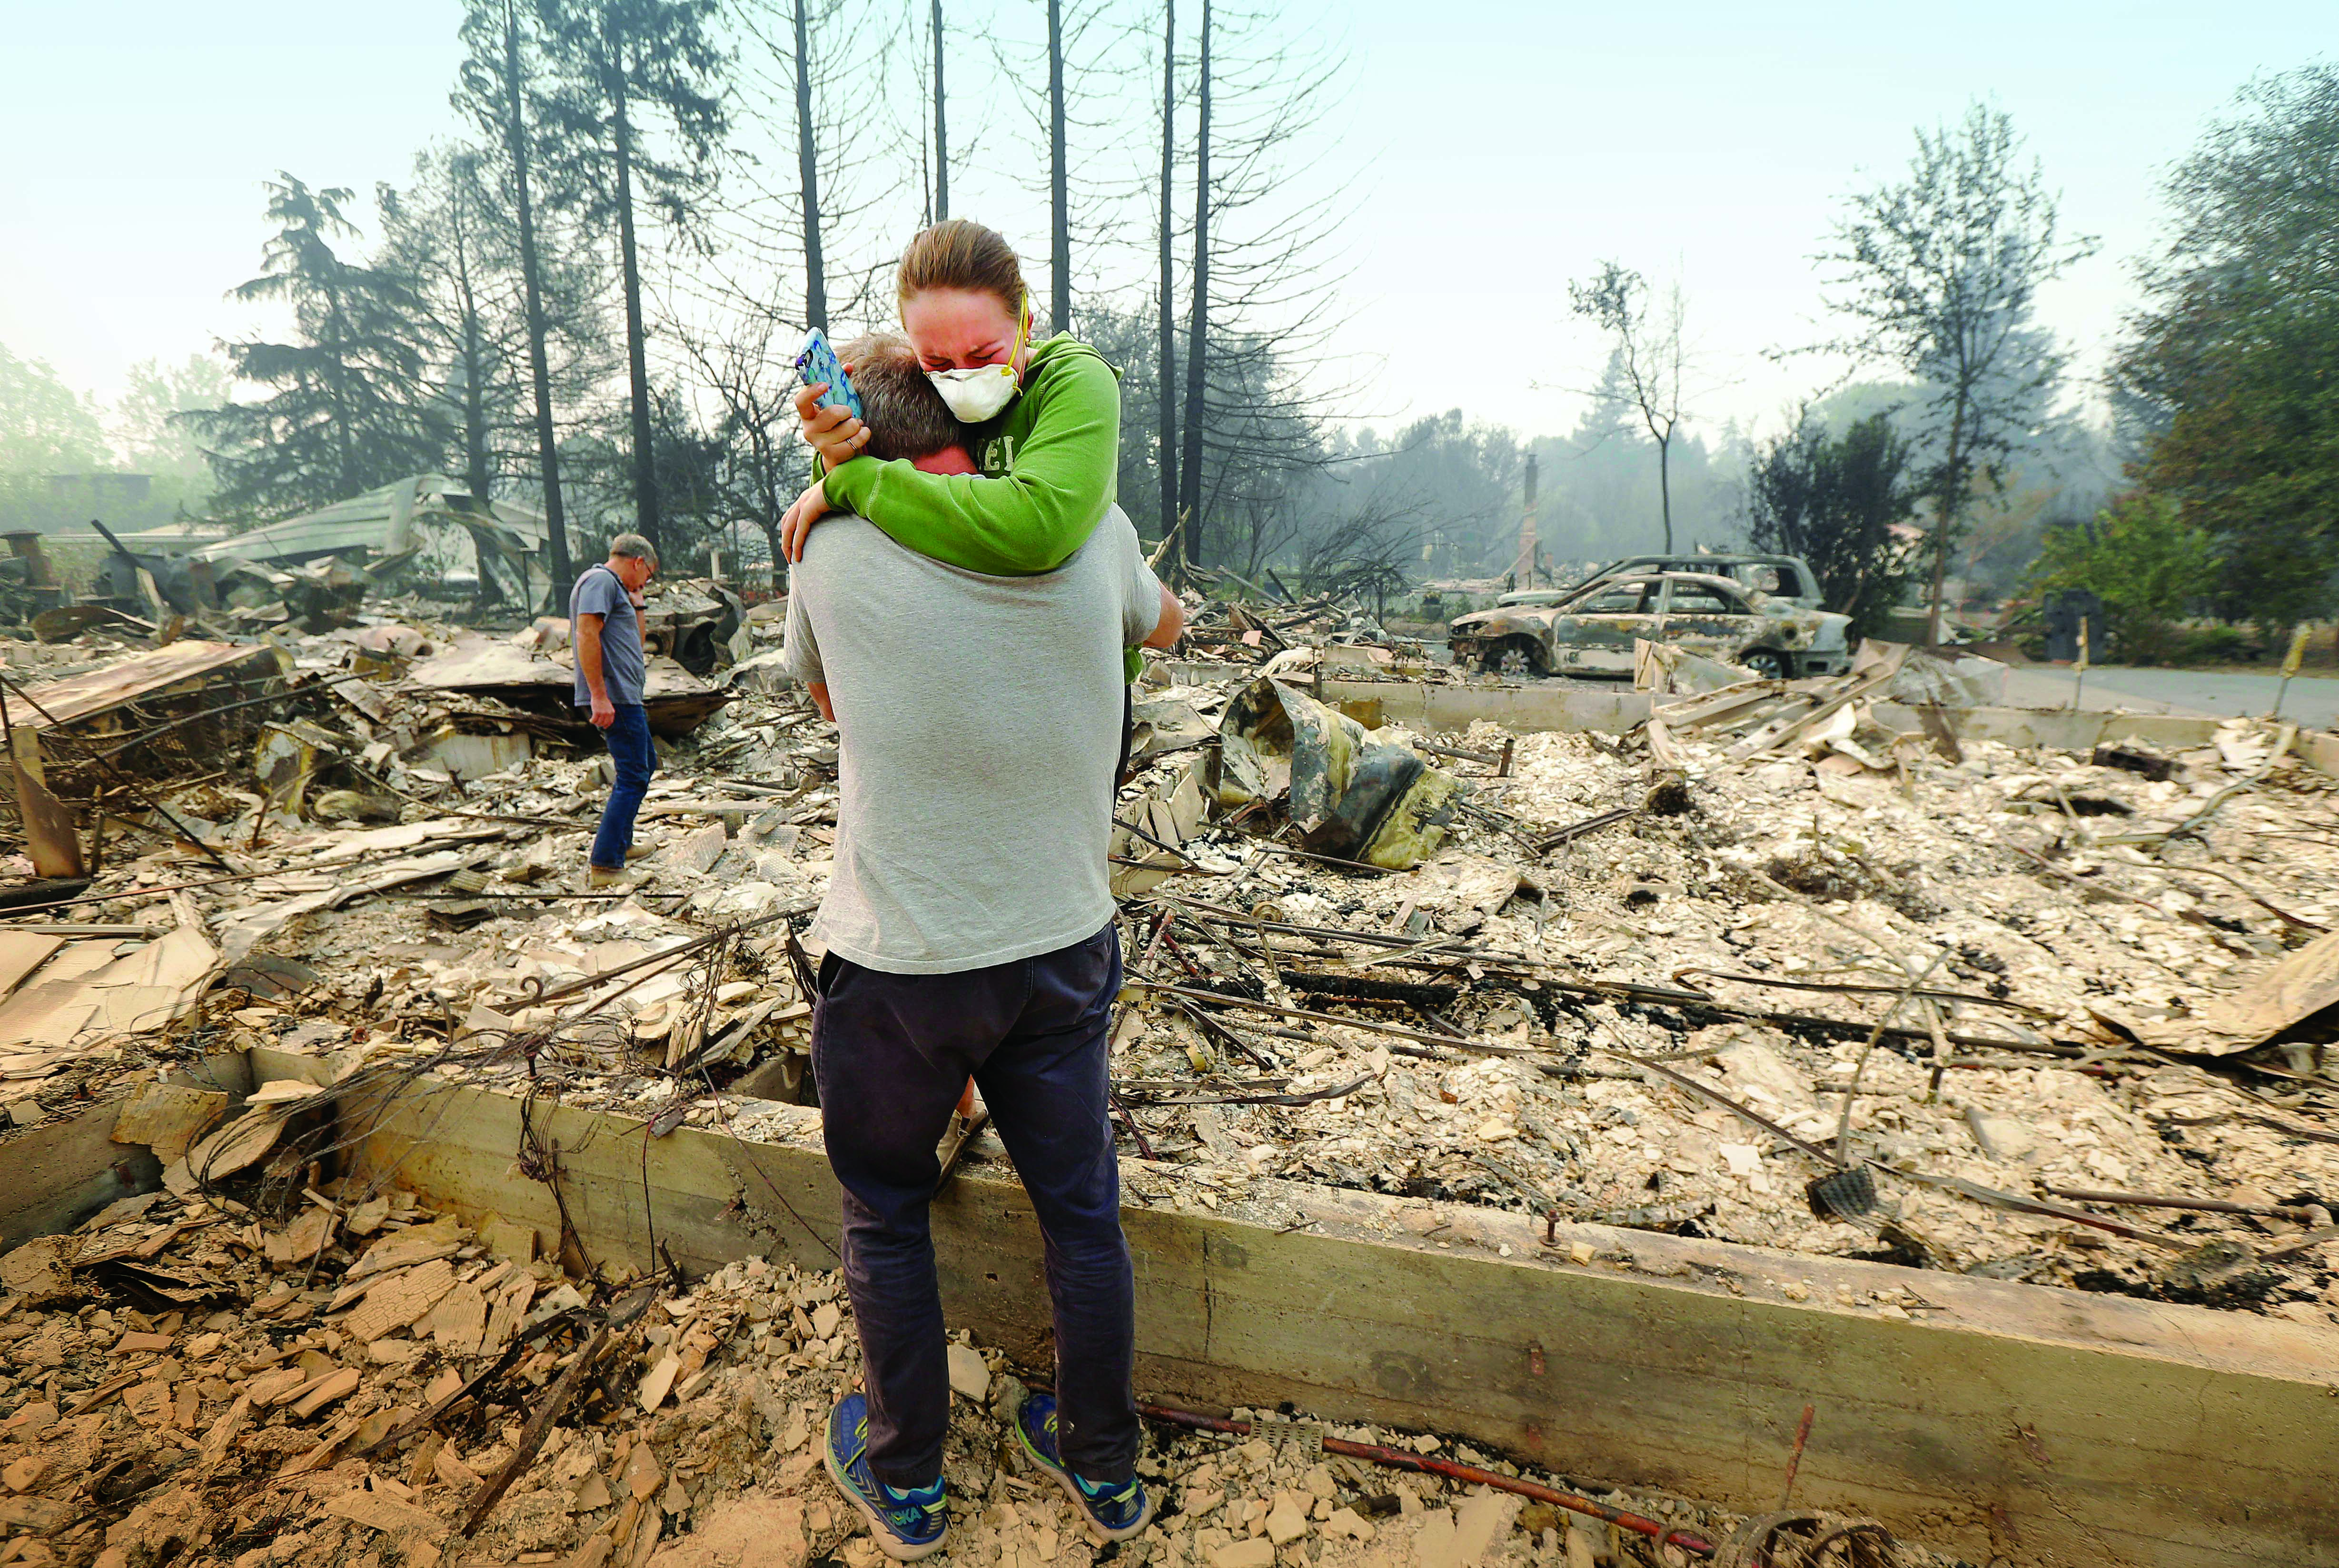 Man comforts a woman after a wildfire destroys their home